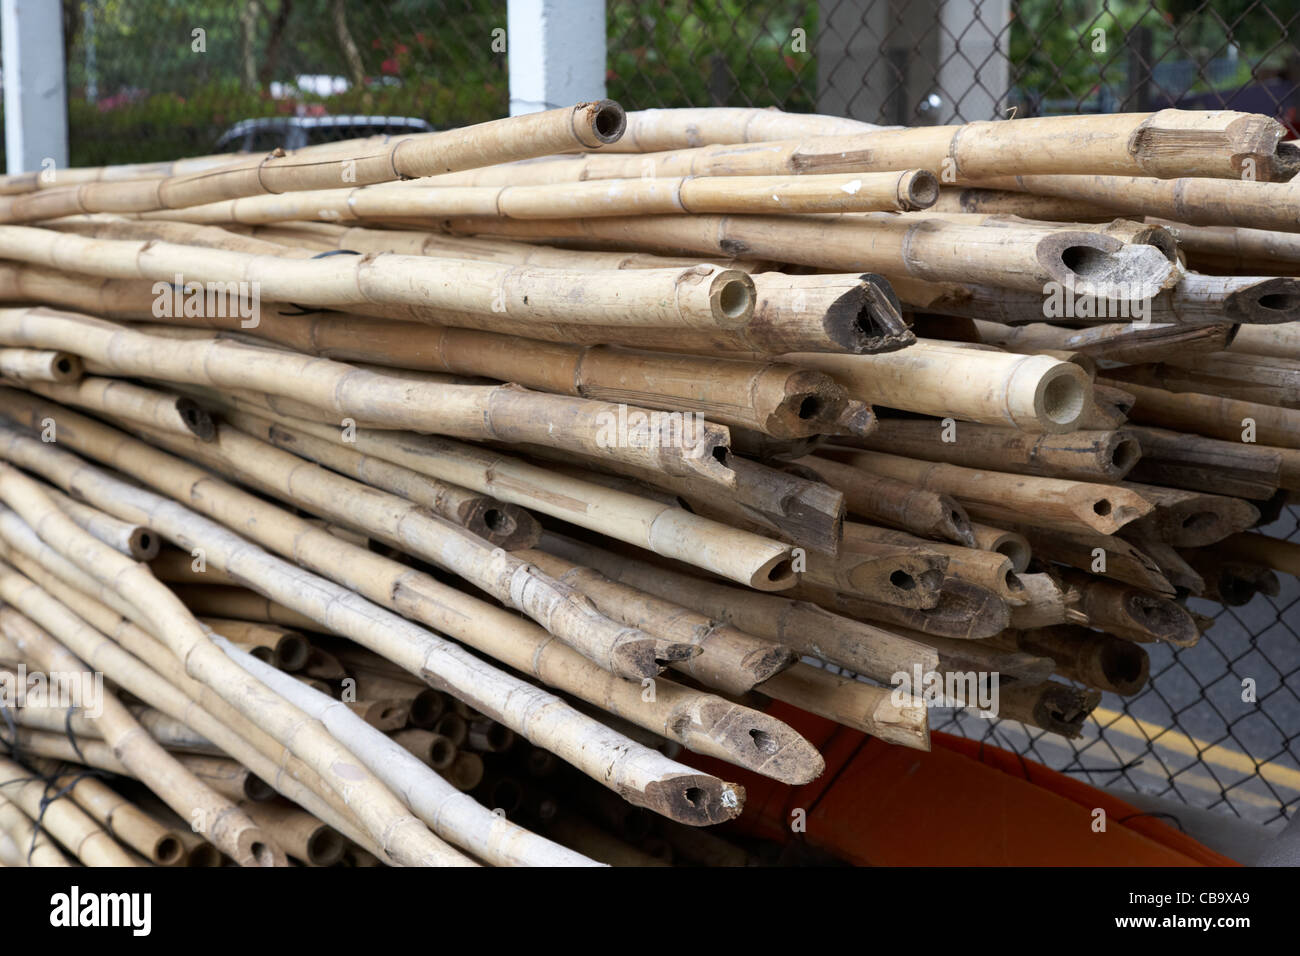 pile of bamboo poles used for building scaffolding hong kong hksar china - Stock Image